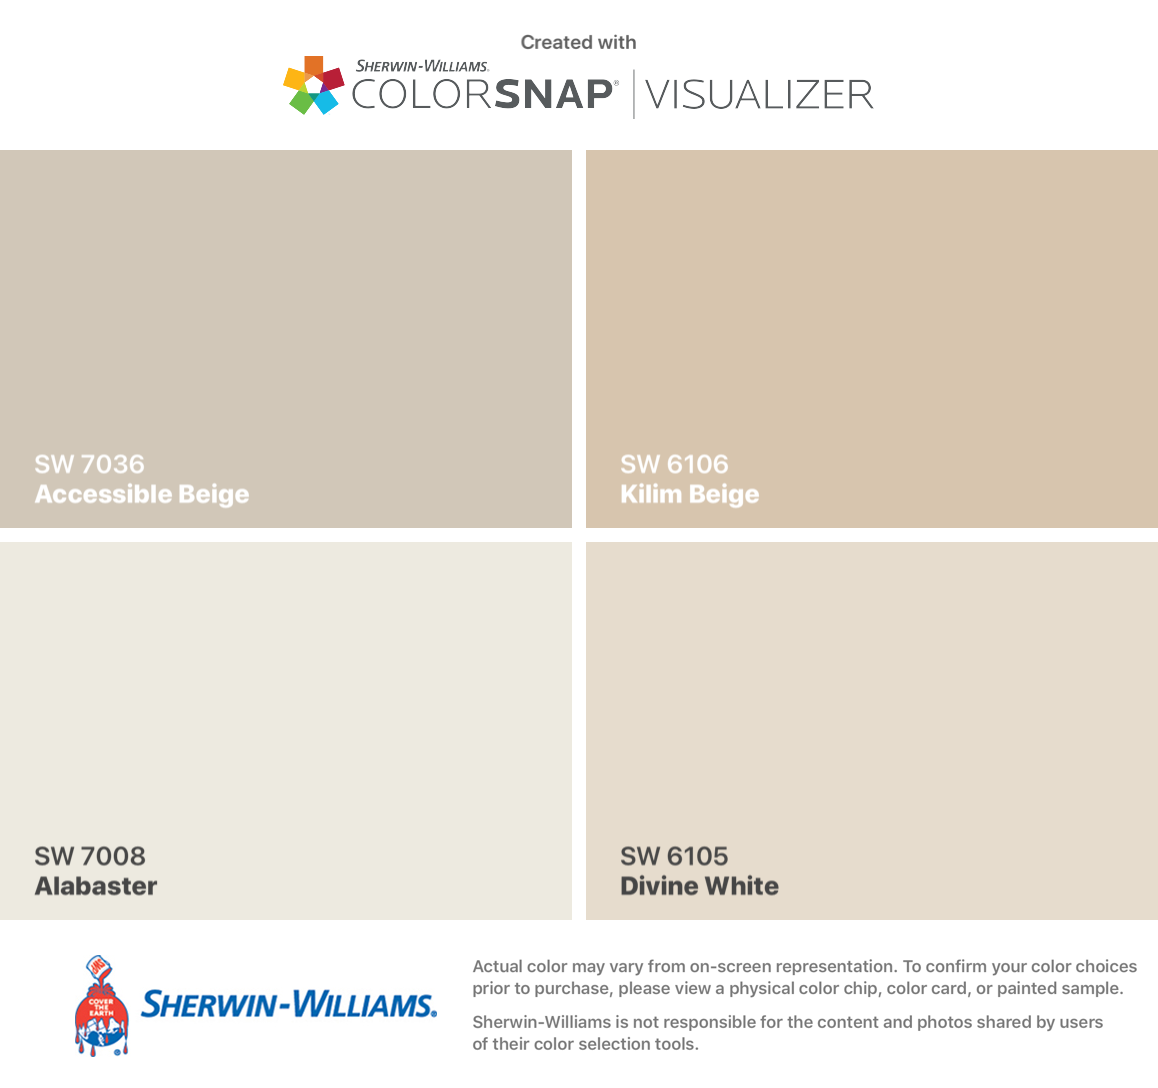 I Found These Colors With Colorsnap Visualizer For Iphone By Sherwin Williams Accessible Beige Sw 7036 Alaba Balanced Beige Beige Paint Colors Kilim Beige